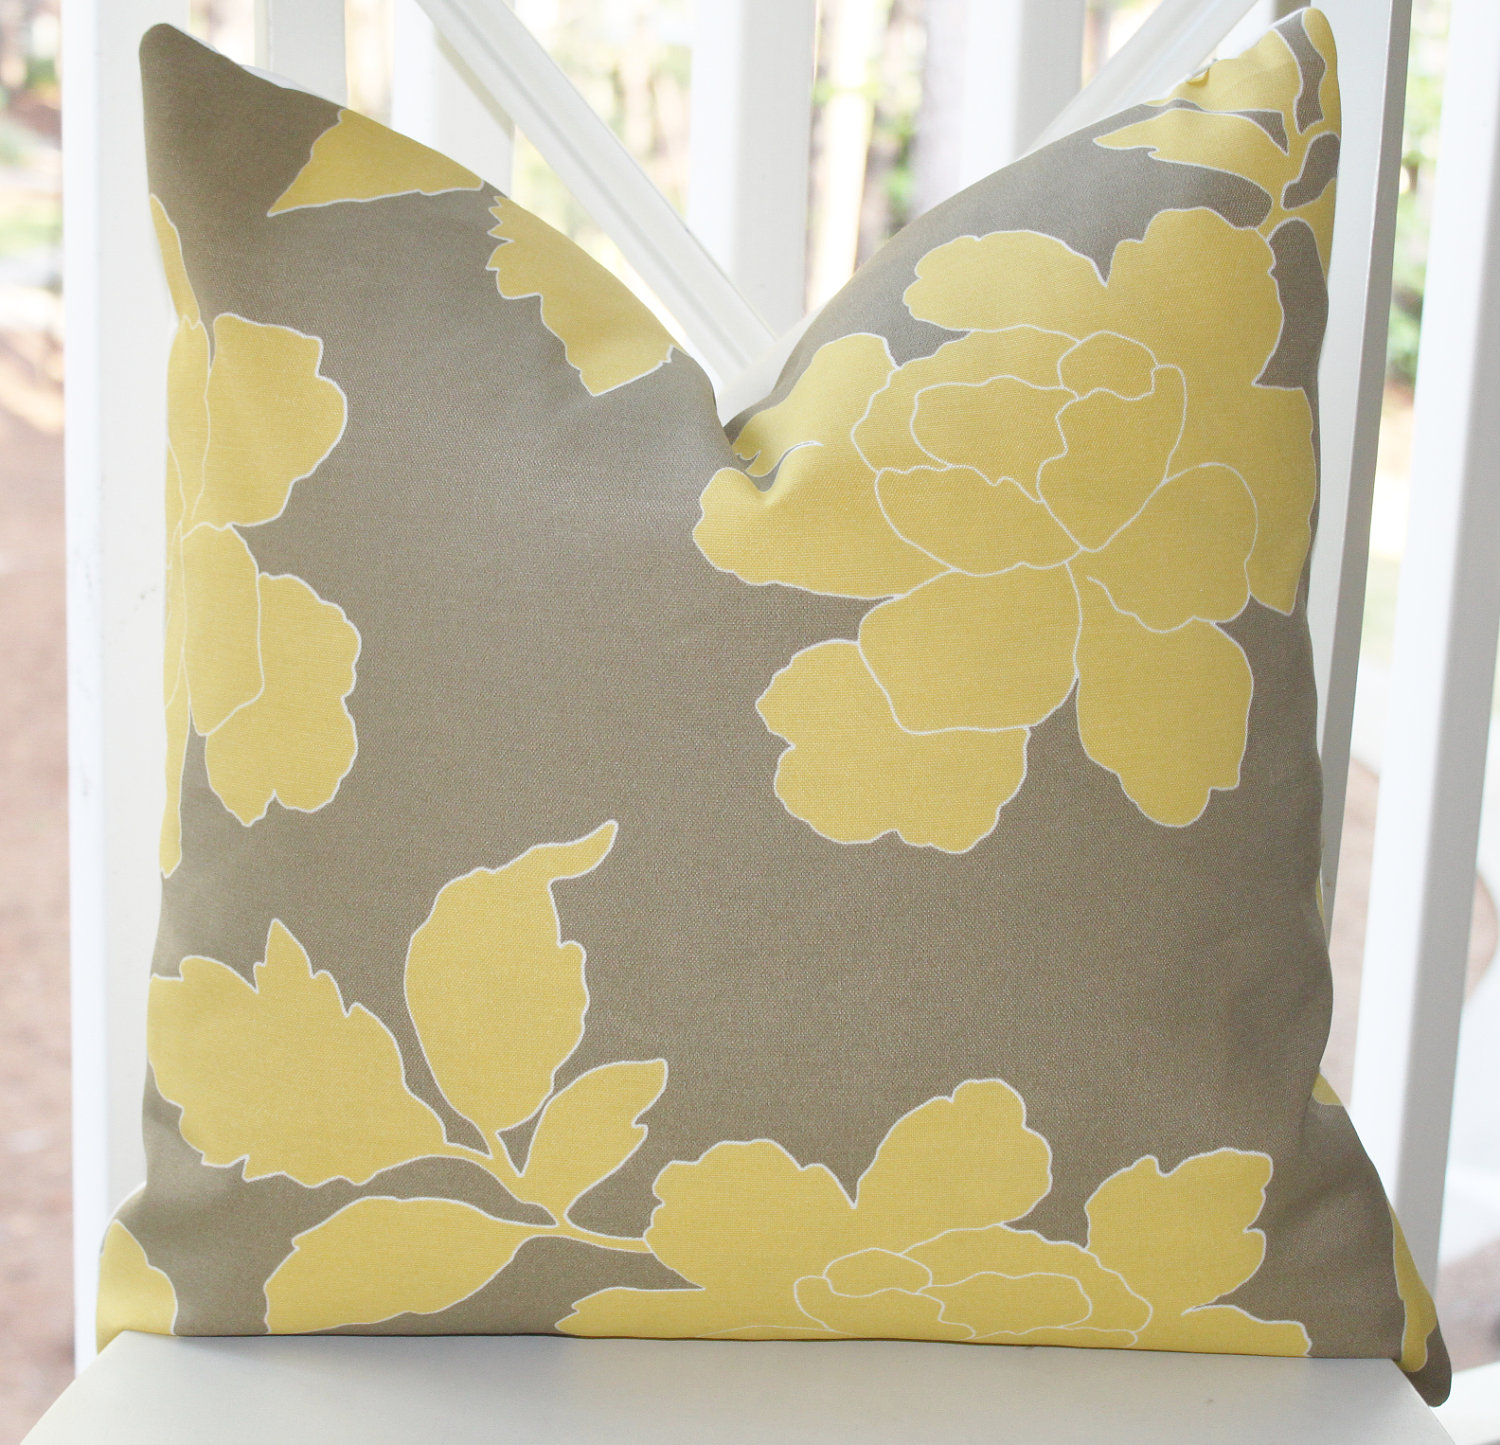 Target Outdoor Cushion Perfect Companion For Everyday